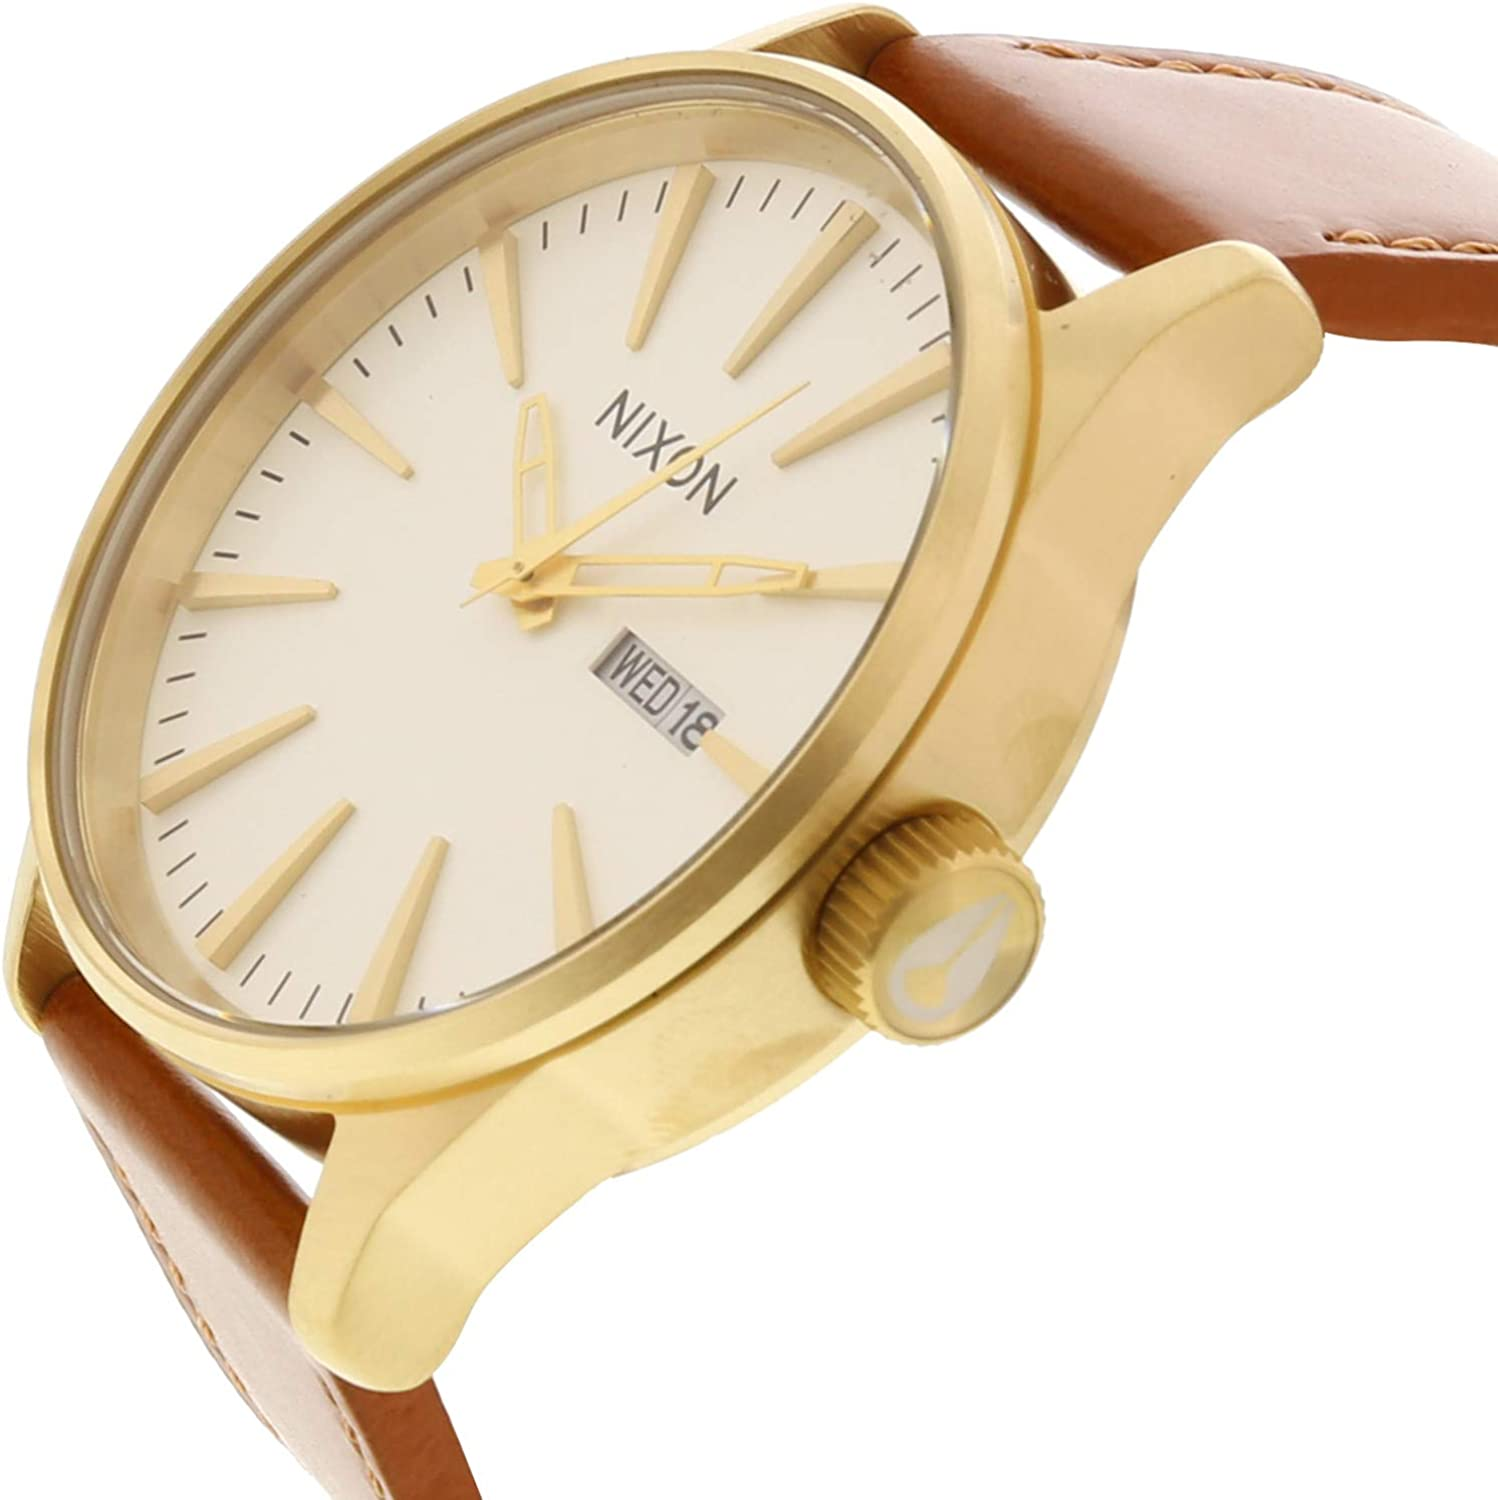 Nixon Men's A105 Sentry 42mm Stainless Steel Leather Quartz Movement Watch Gold/White/Saddle